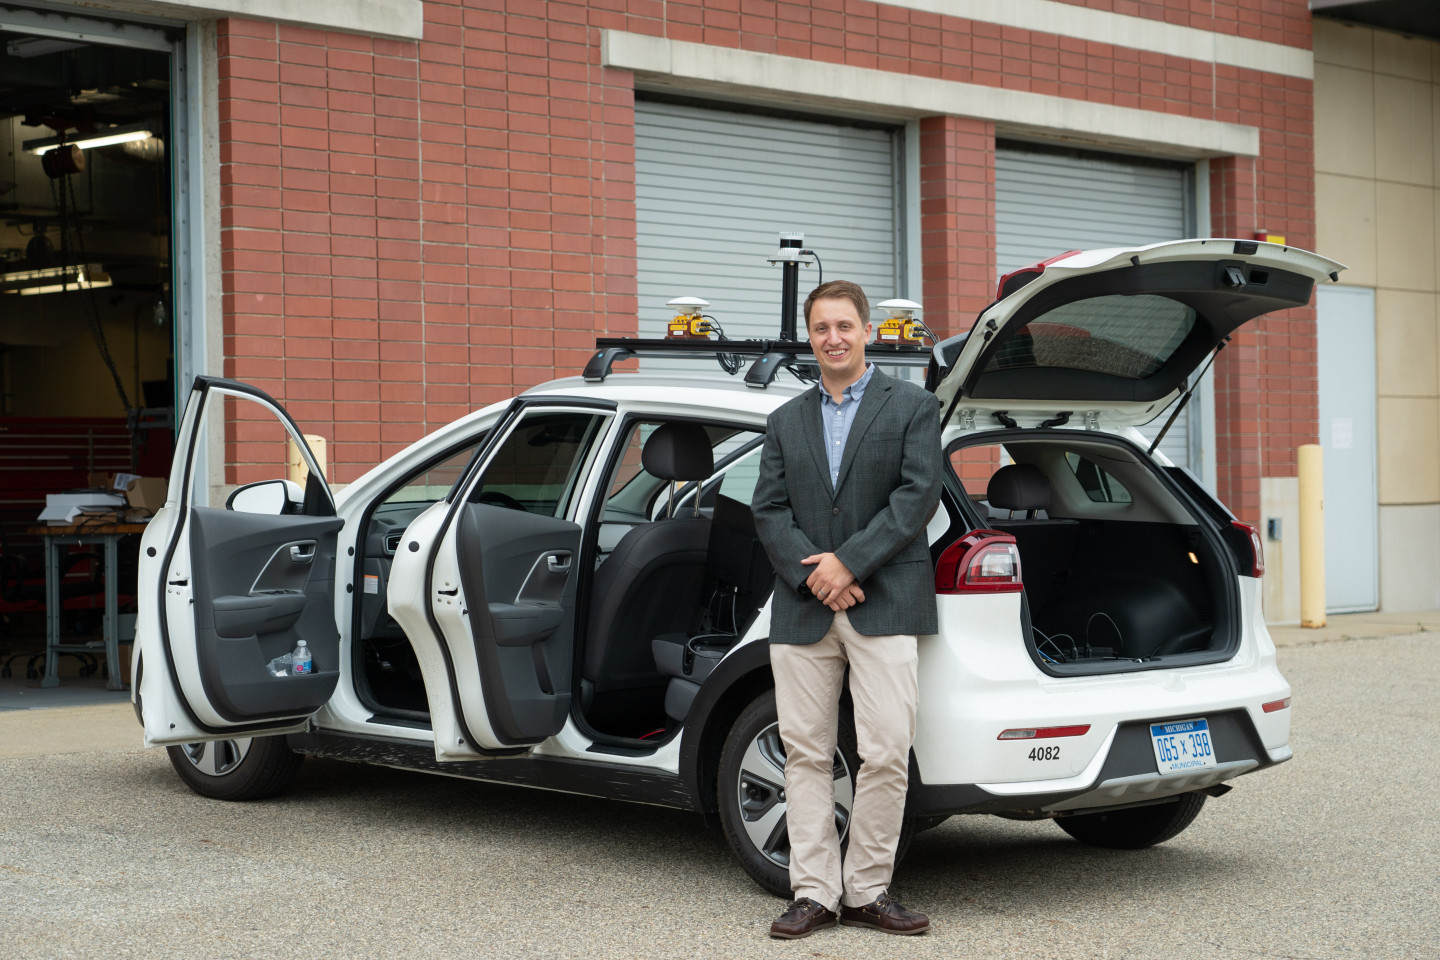 Dr. Zachary Asher stands next to a vehicle with its doors and trunk open.